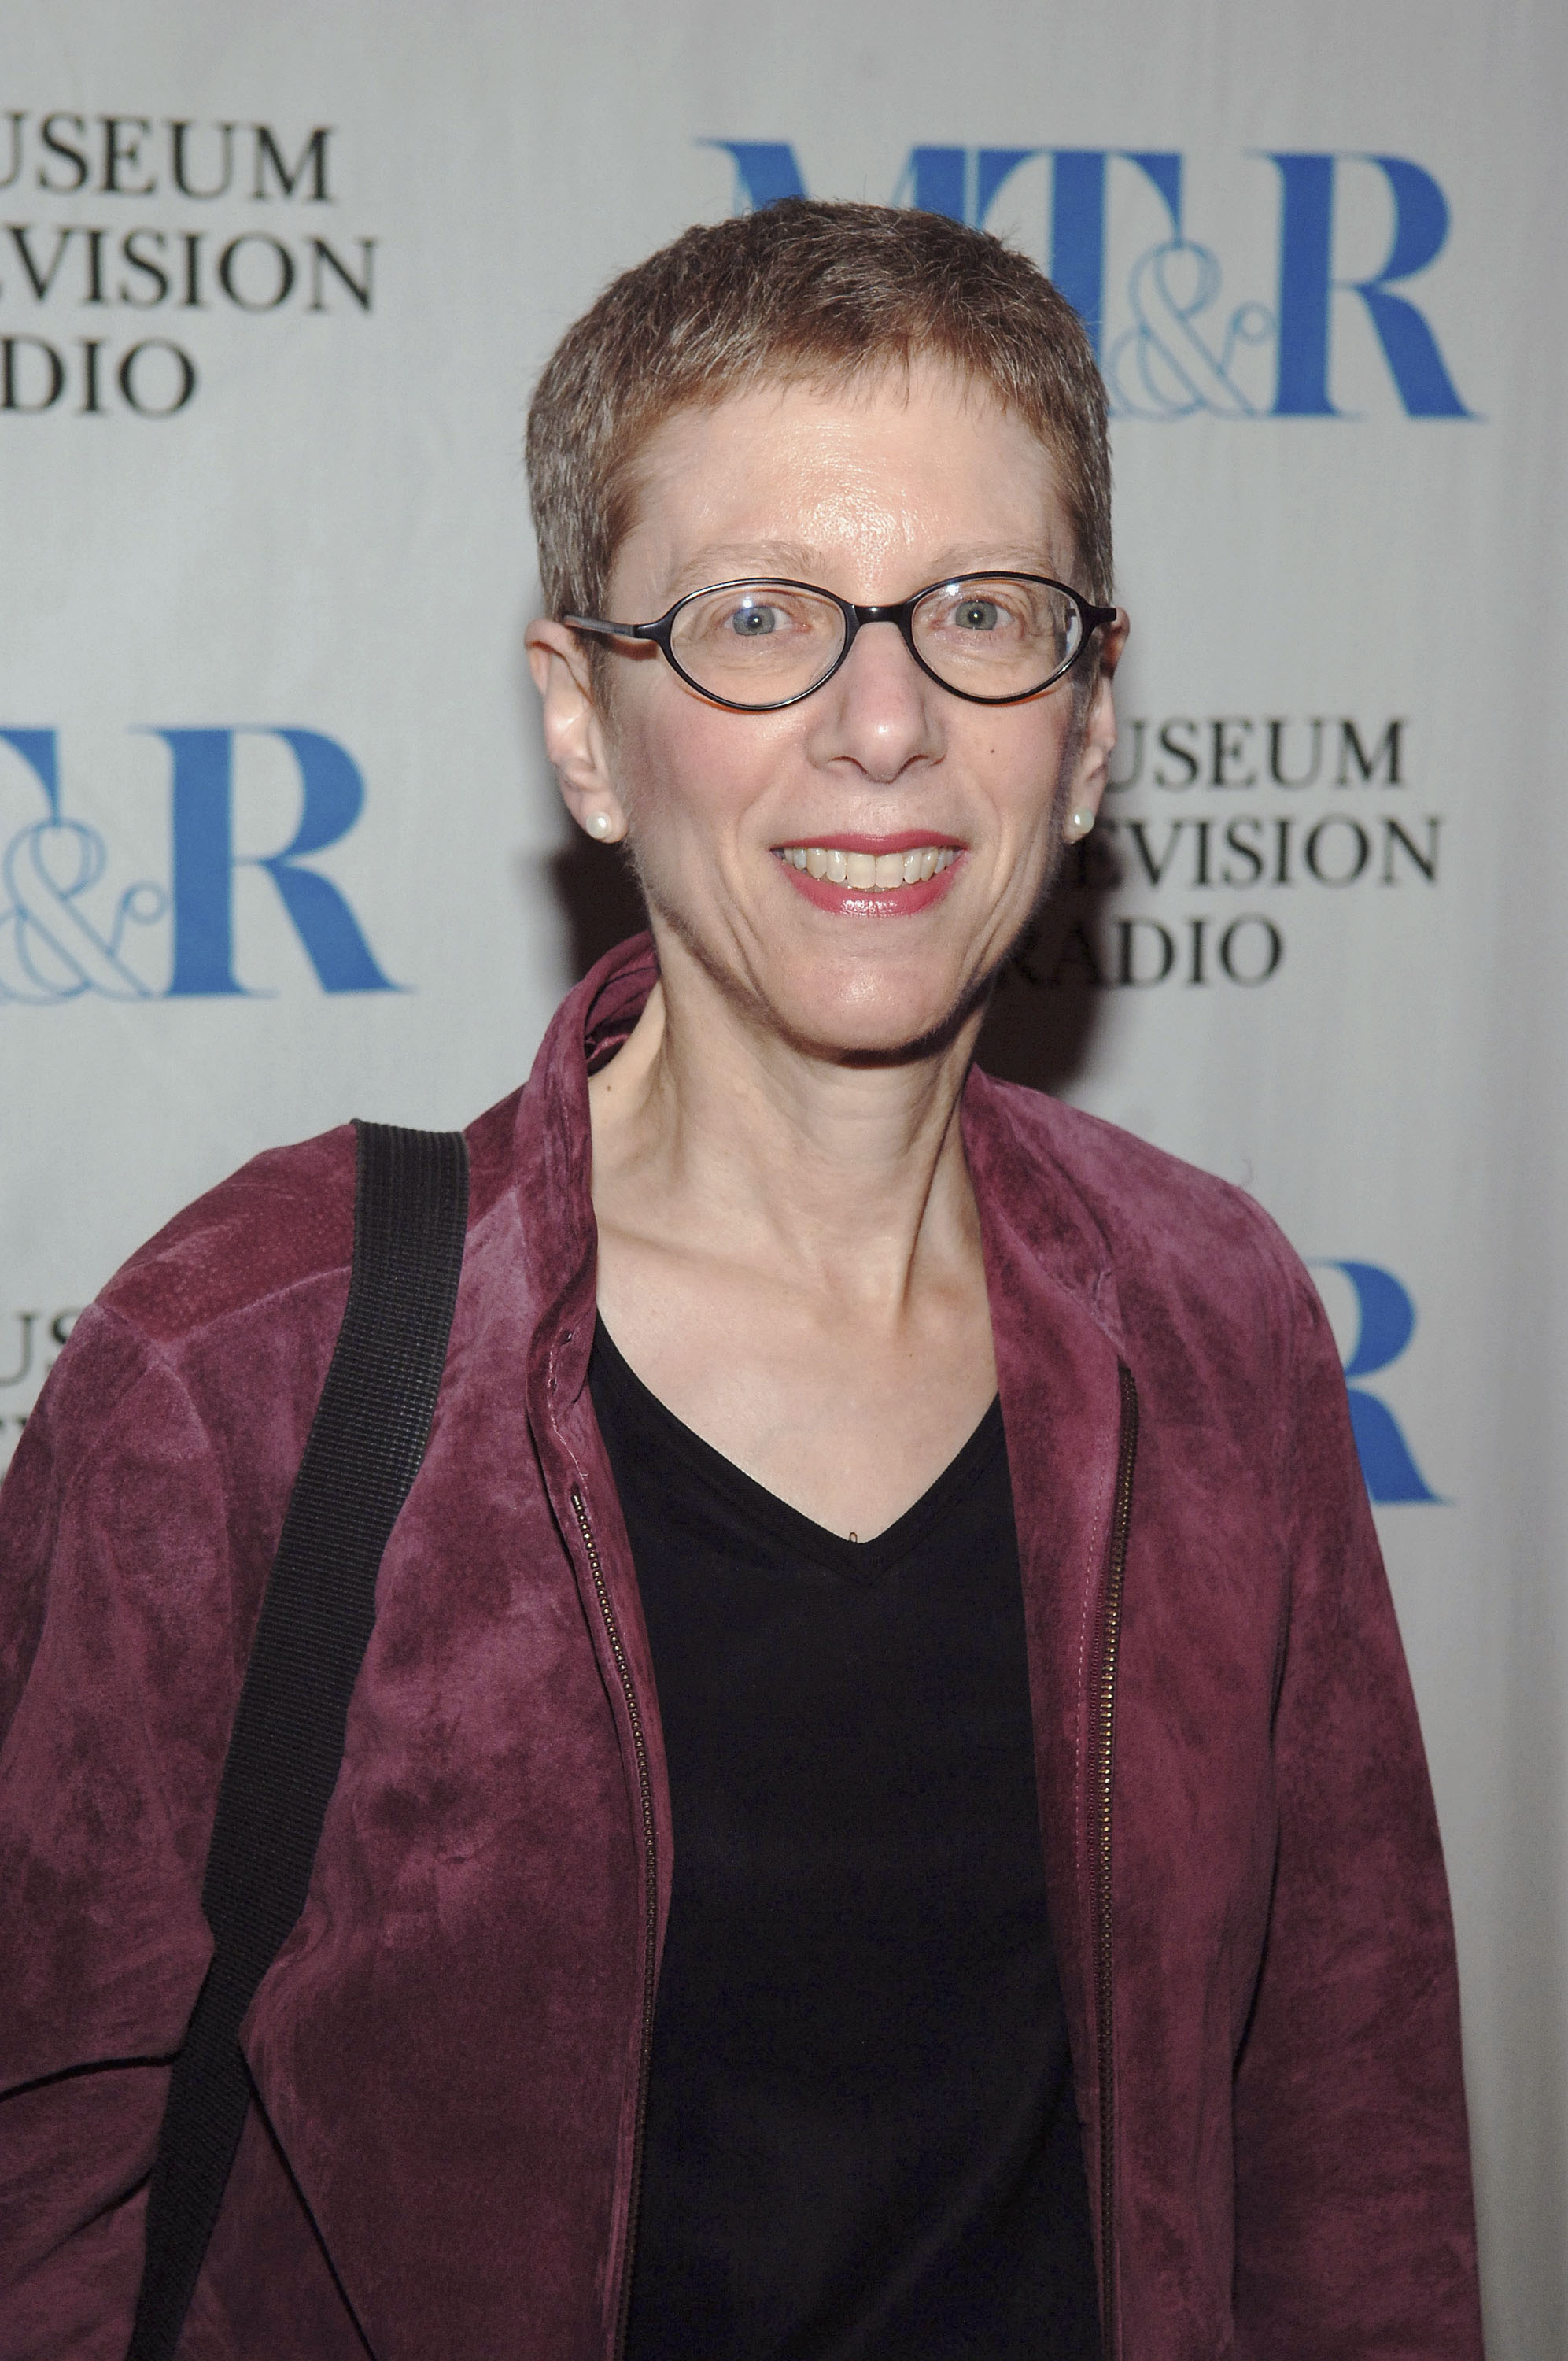 Terry Gross at the launch party for  She Made It: Women Creating Television and Radio  in New York City on Dec. 1, 2005.